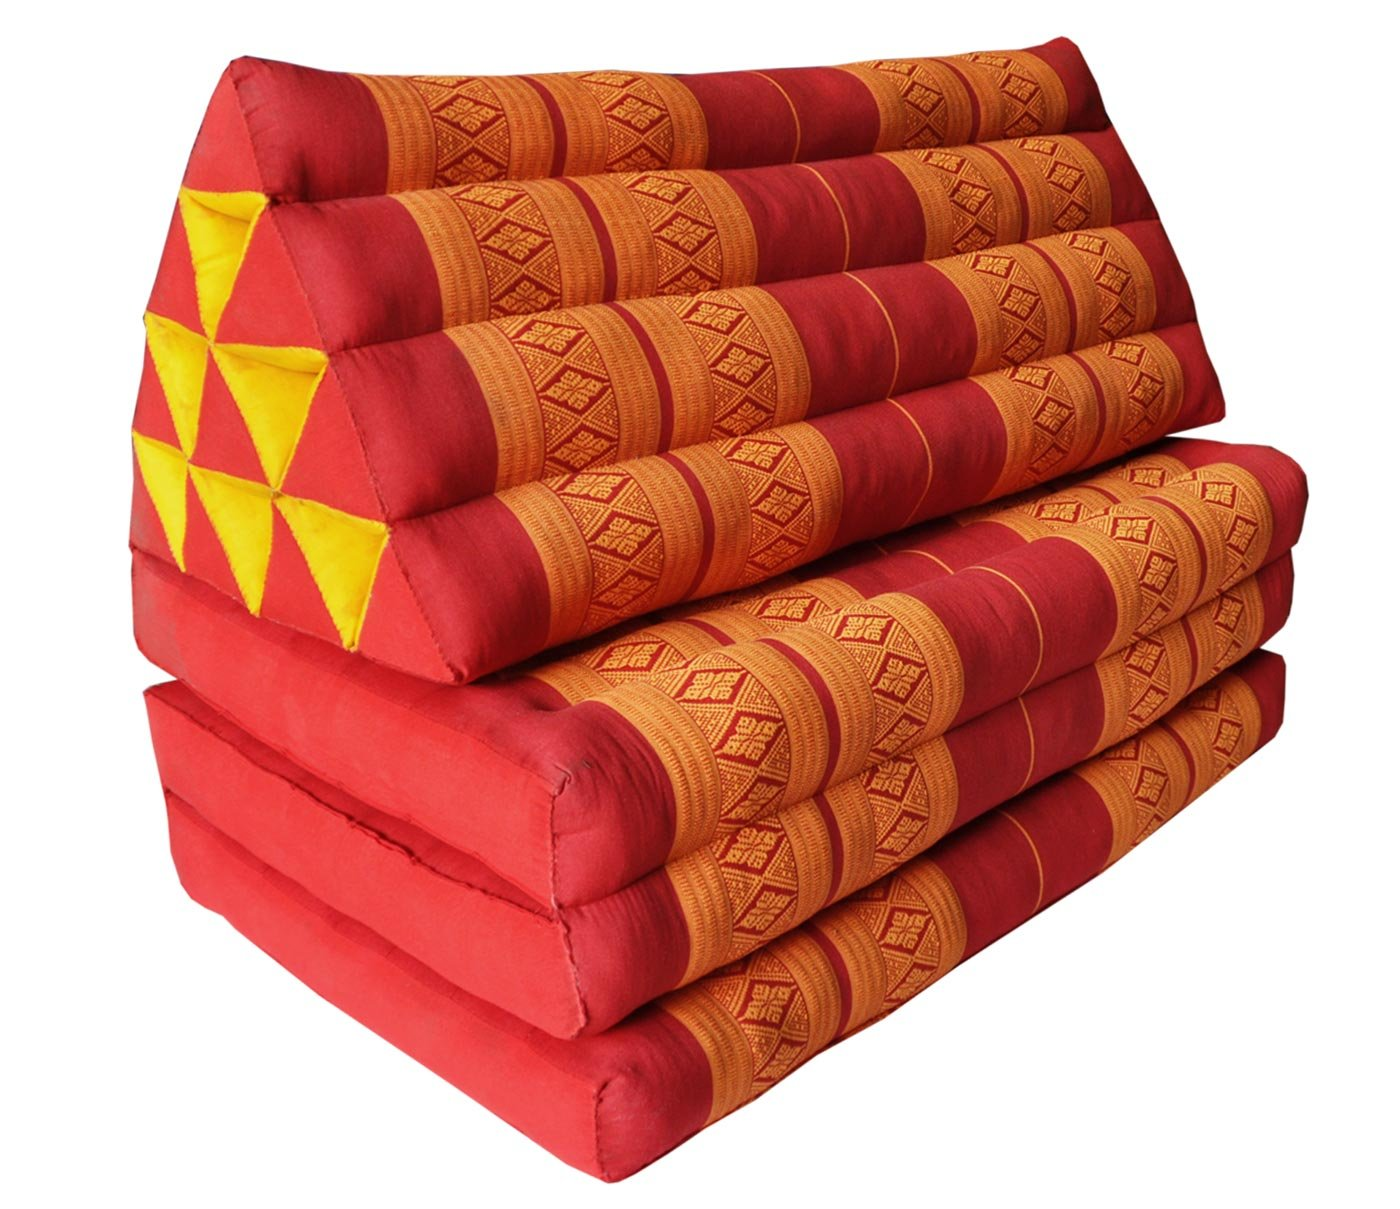 Thai triangle cushion/mattress XXL, with 3 folding seats, red/orange, sofa, relaxation, beach, pool, meditation, yoga, made in Thailand. (81018) by Wilai GmbH